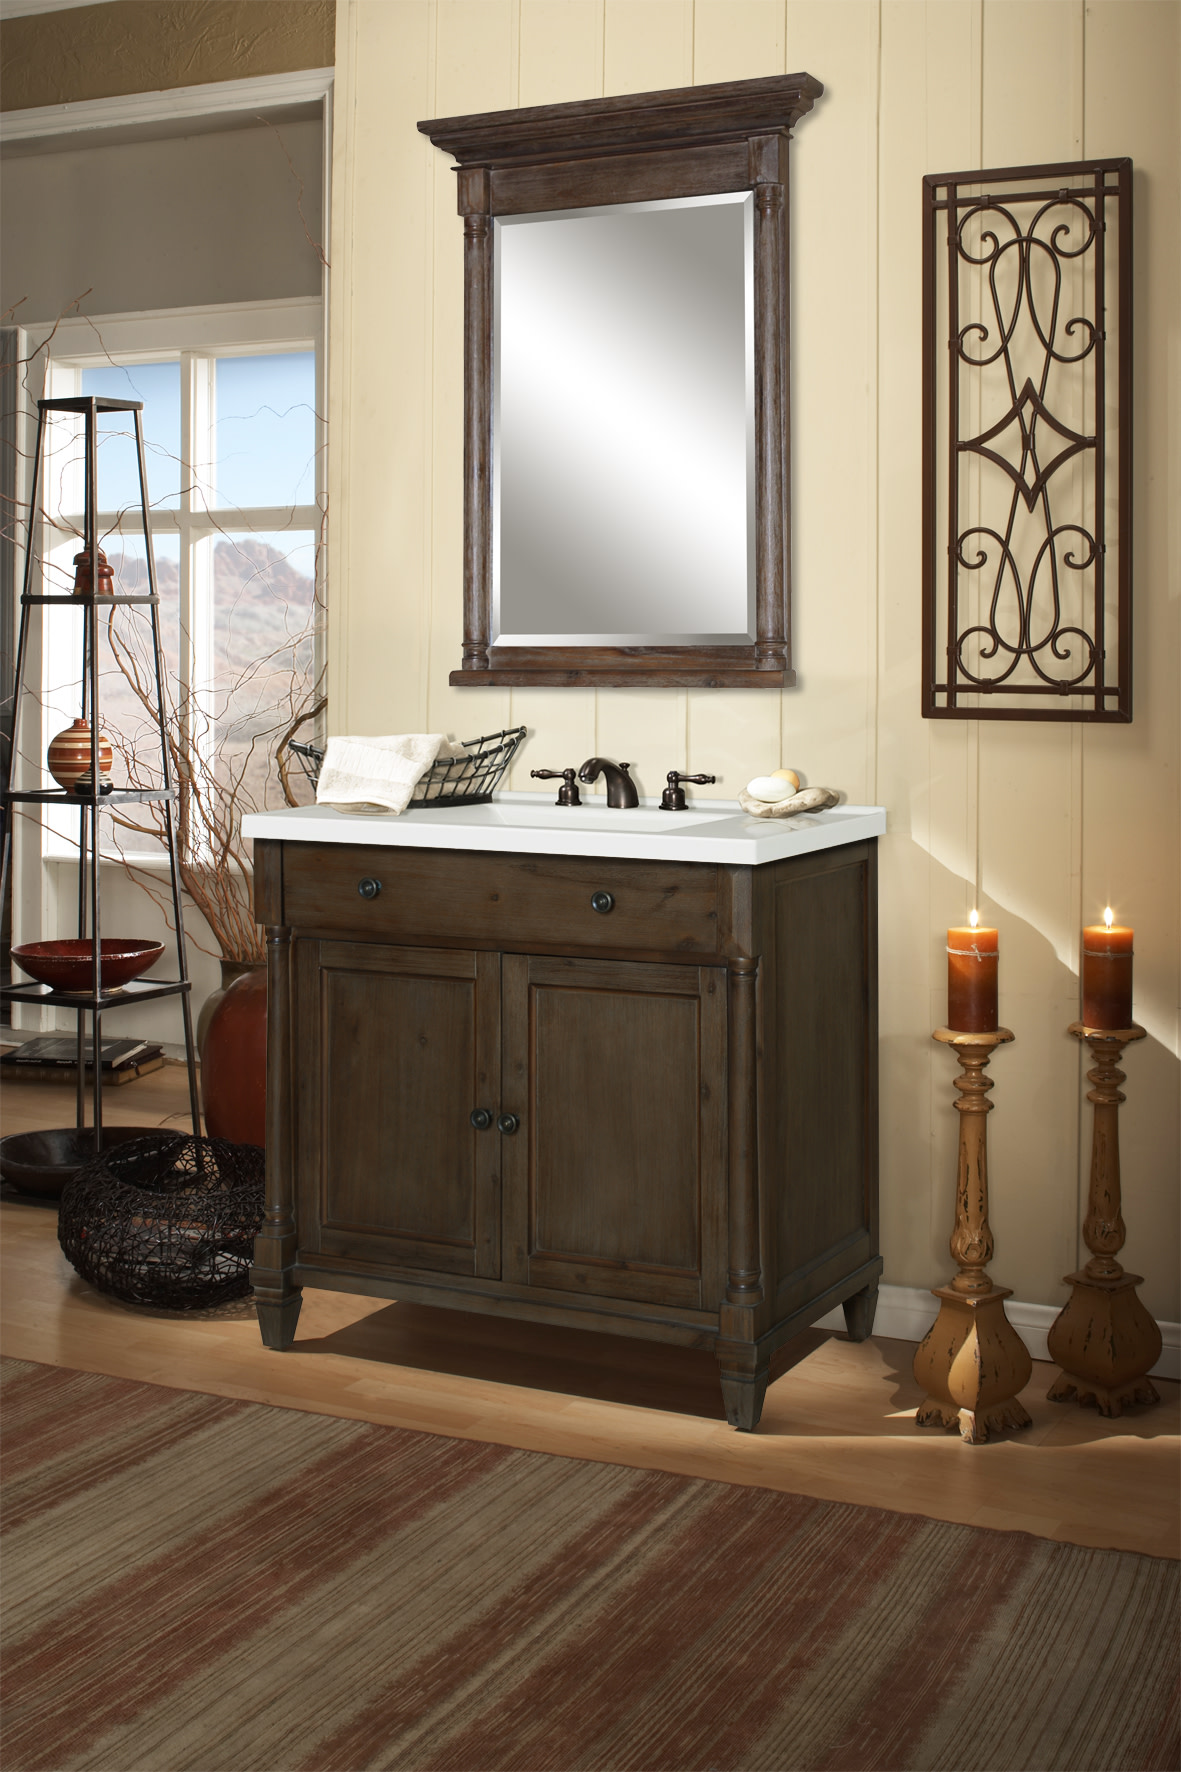 Miseno-MVNS36COM-36-034-Bathroom-Vanity-Set-Cabinet-Stone-Top-and-Mirror thumbnail 6